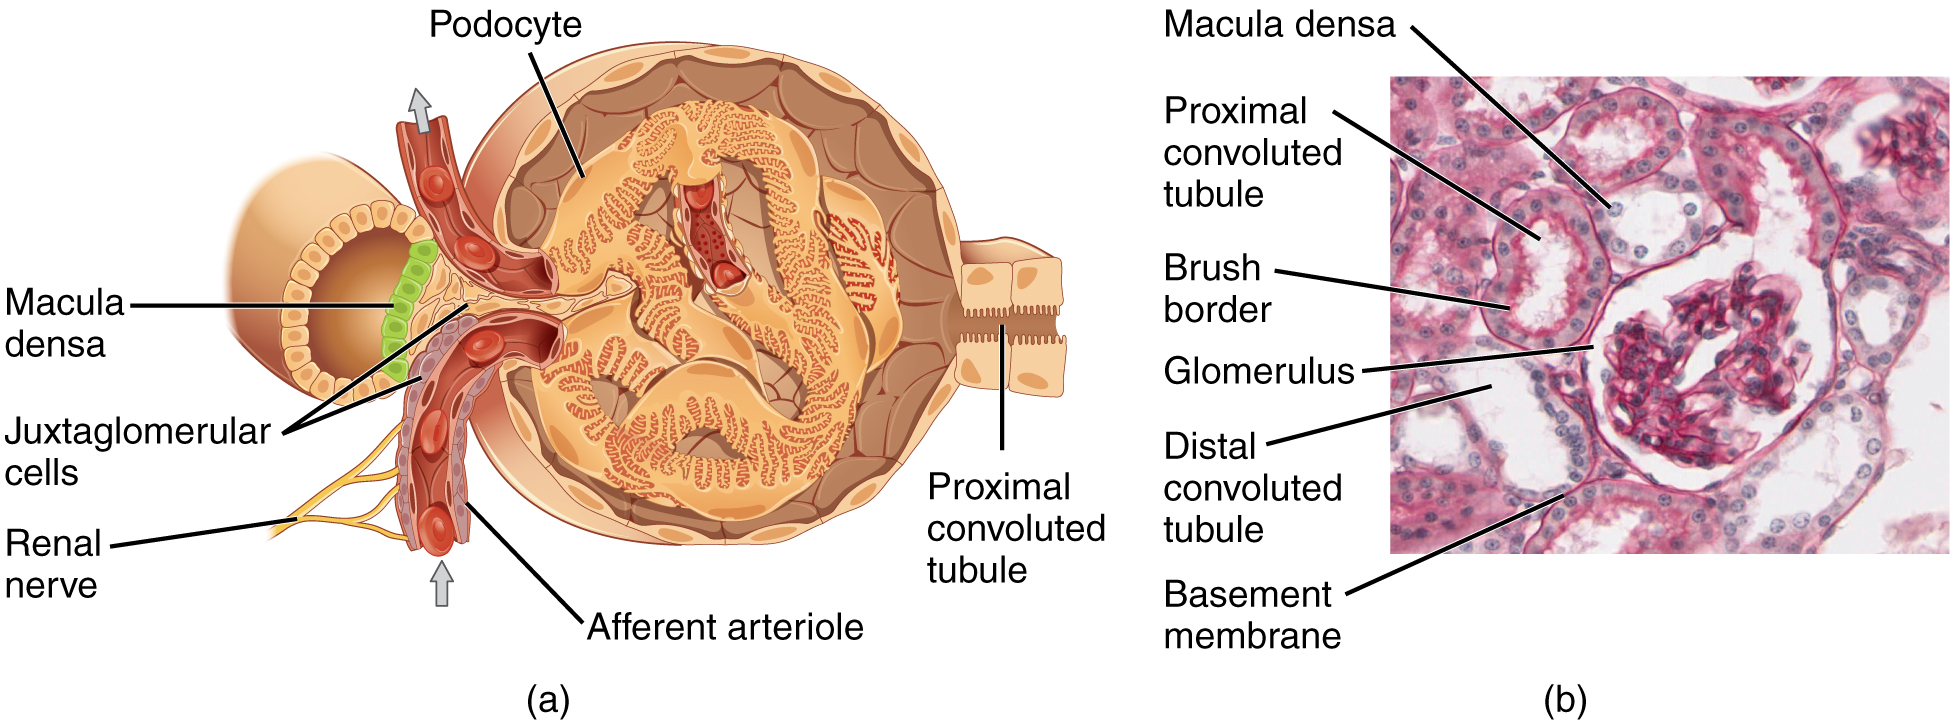 The top panel of this image shows the cross section of the juxtaglomerular apparatus. The major parts are labeled.